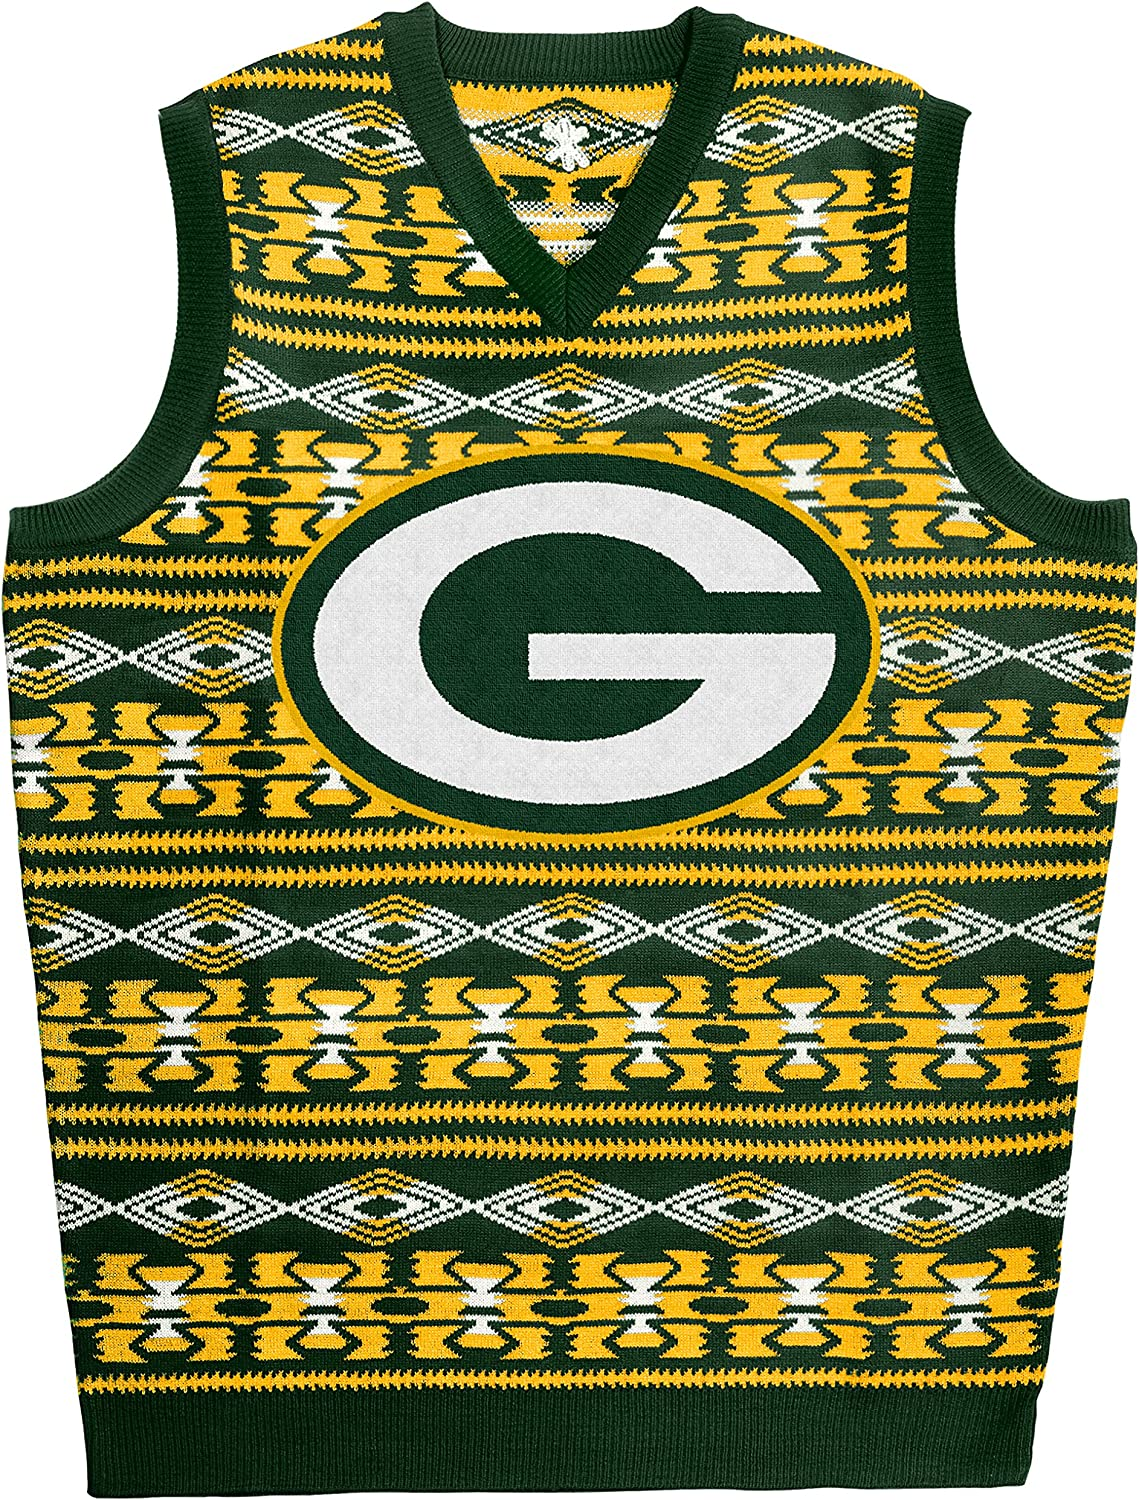 KLEW NFL Green Packers Ugly Sweater Vest, Small, Green